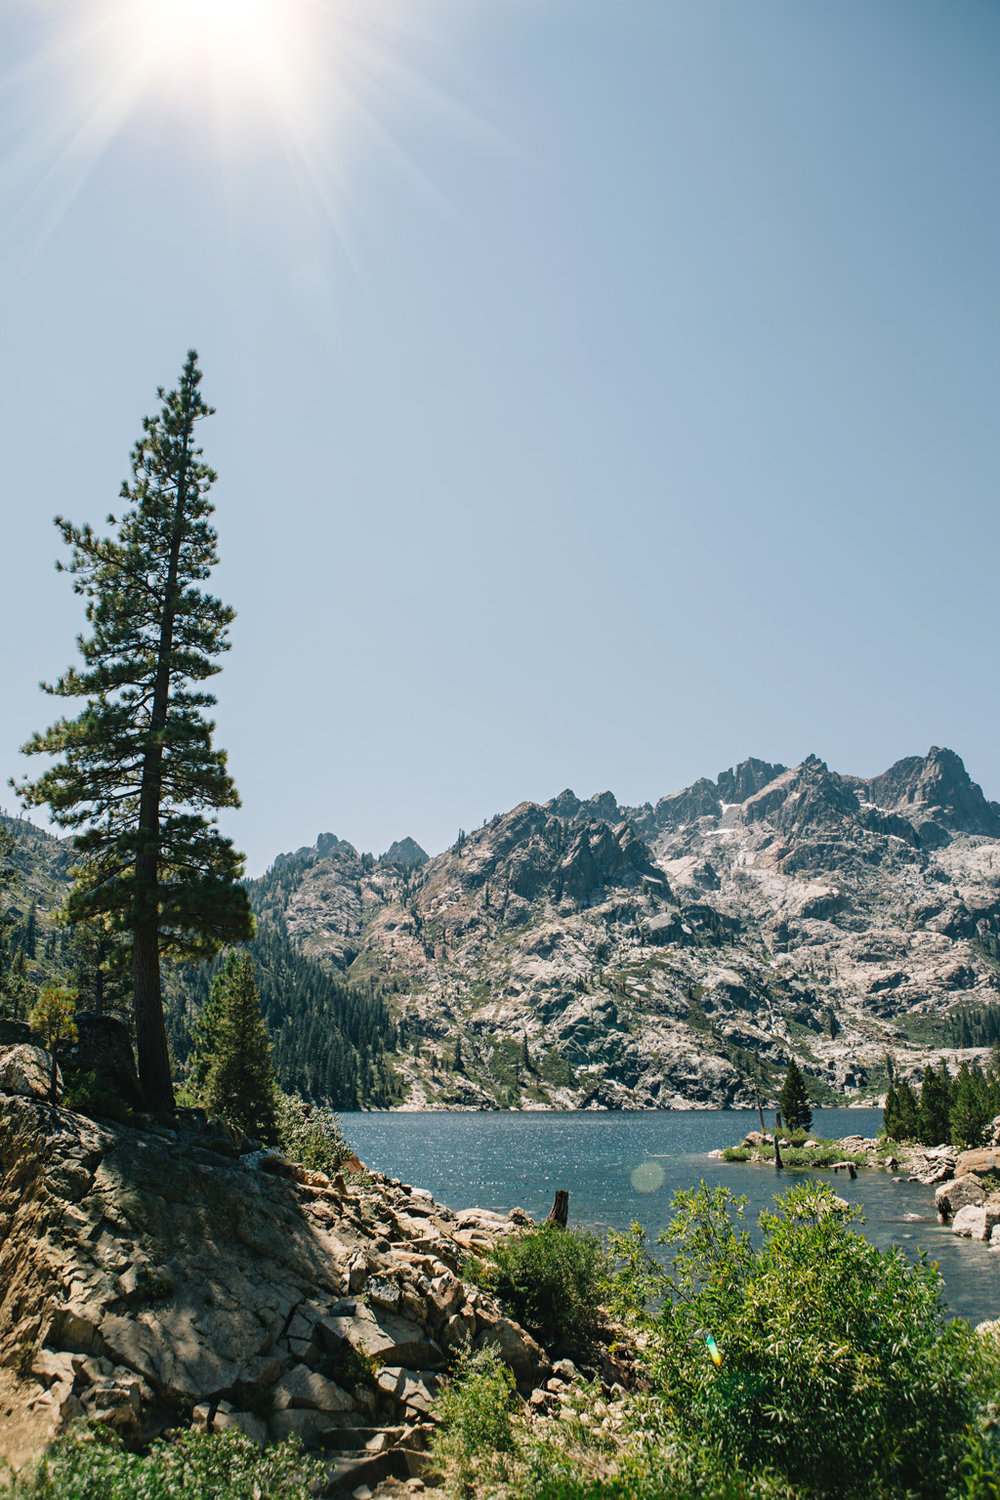 CindyGiovagnoli_outdoors_photographer_Sierra_Buttes_firetower_watchtower_Sardine_Snag_Bear_lake_hike_swim_camp-054.jpg